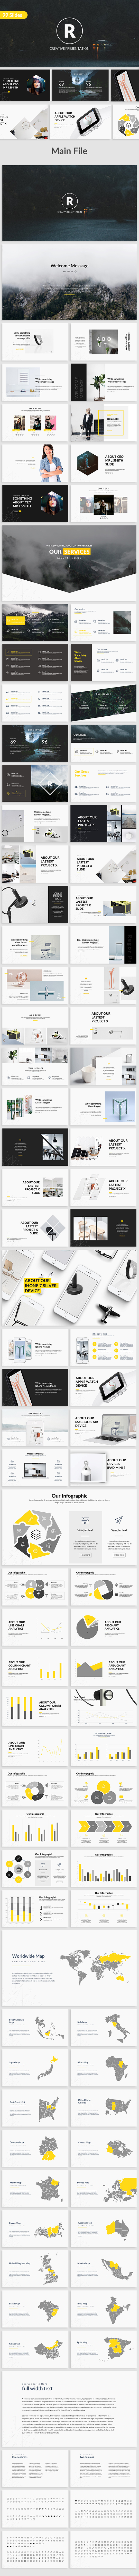 Regor - Creative Keynote Template - Creative Keynote Templates